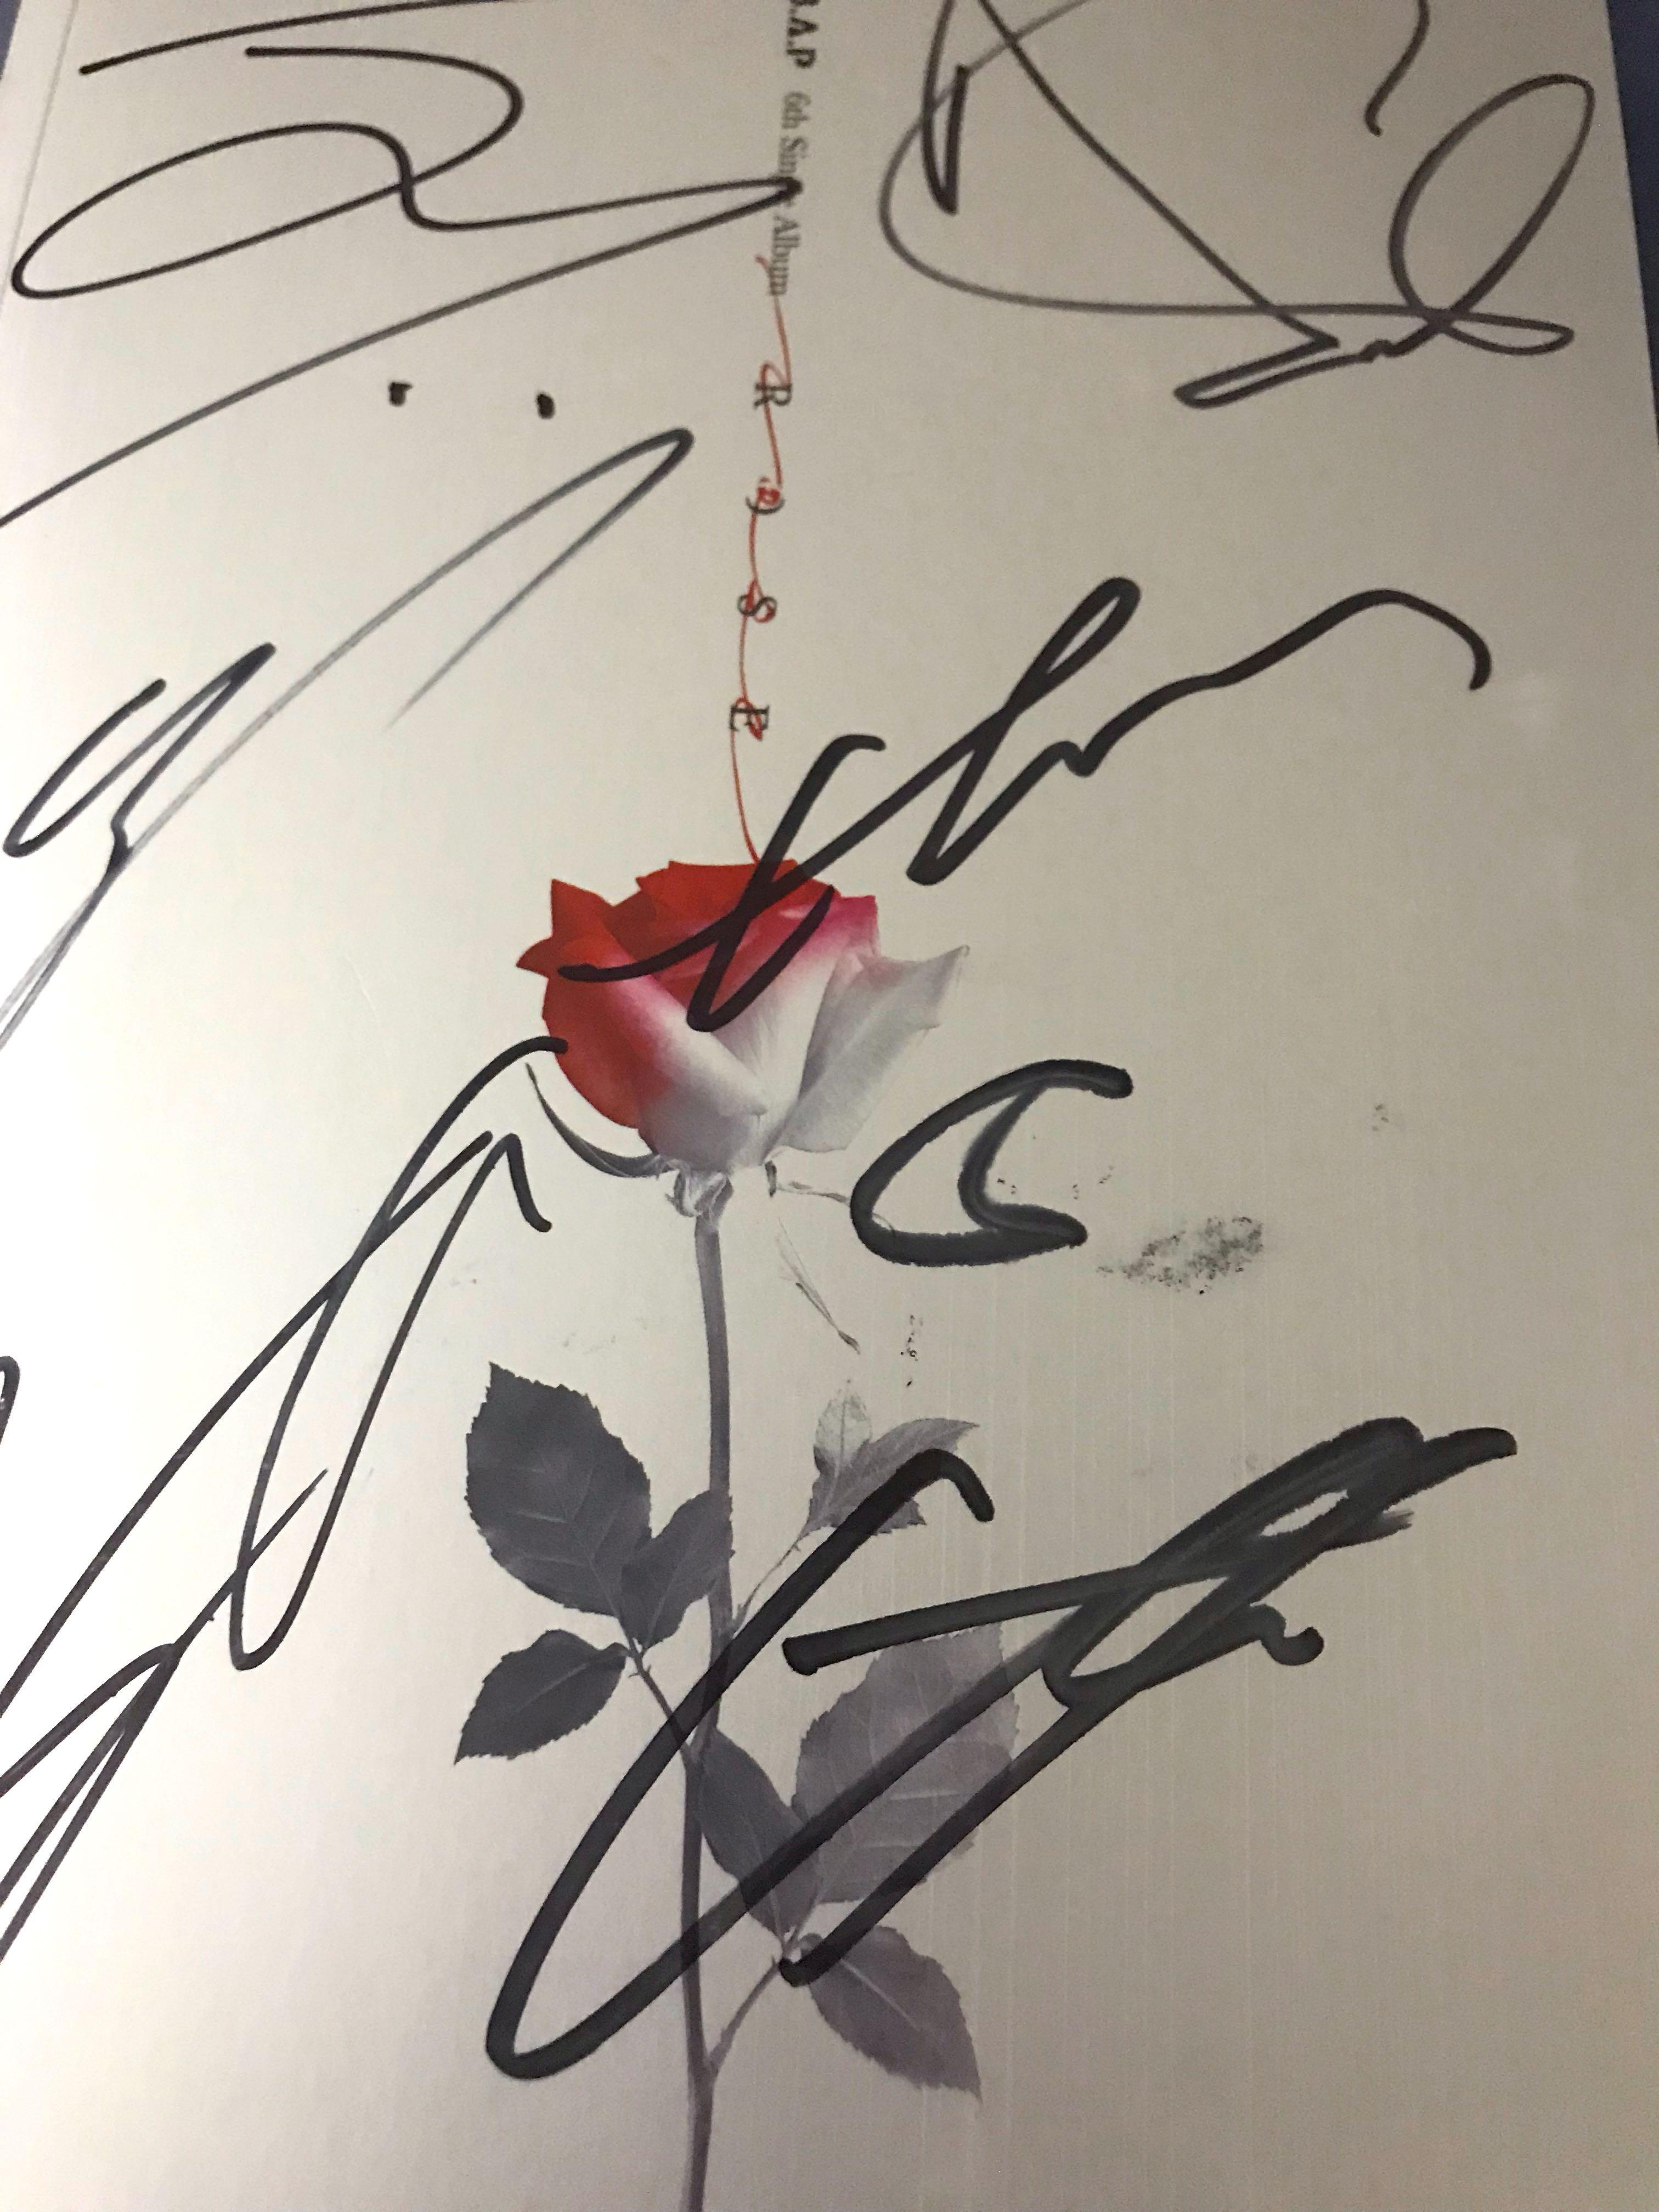 Autographed Signed B.A.P Rose Wake Me Up Single All Members!